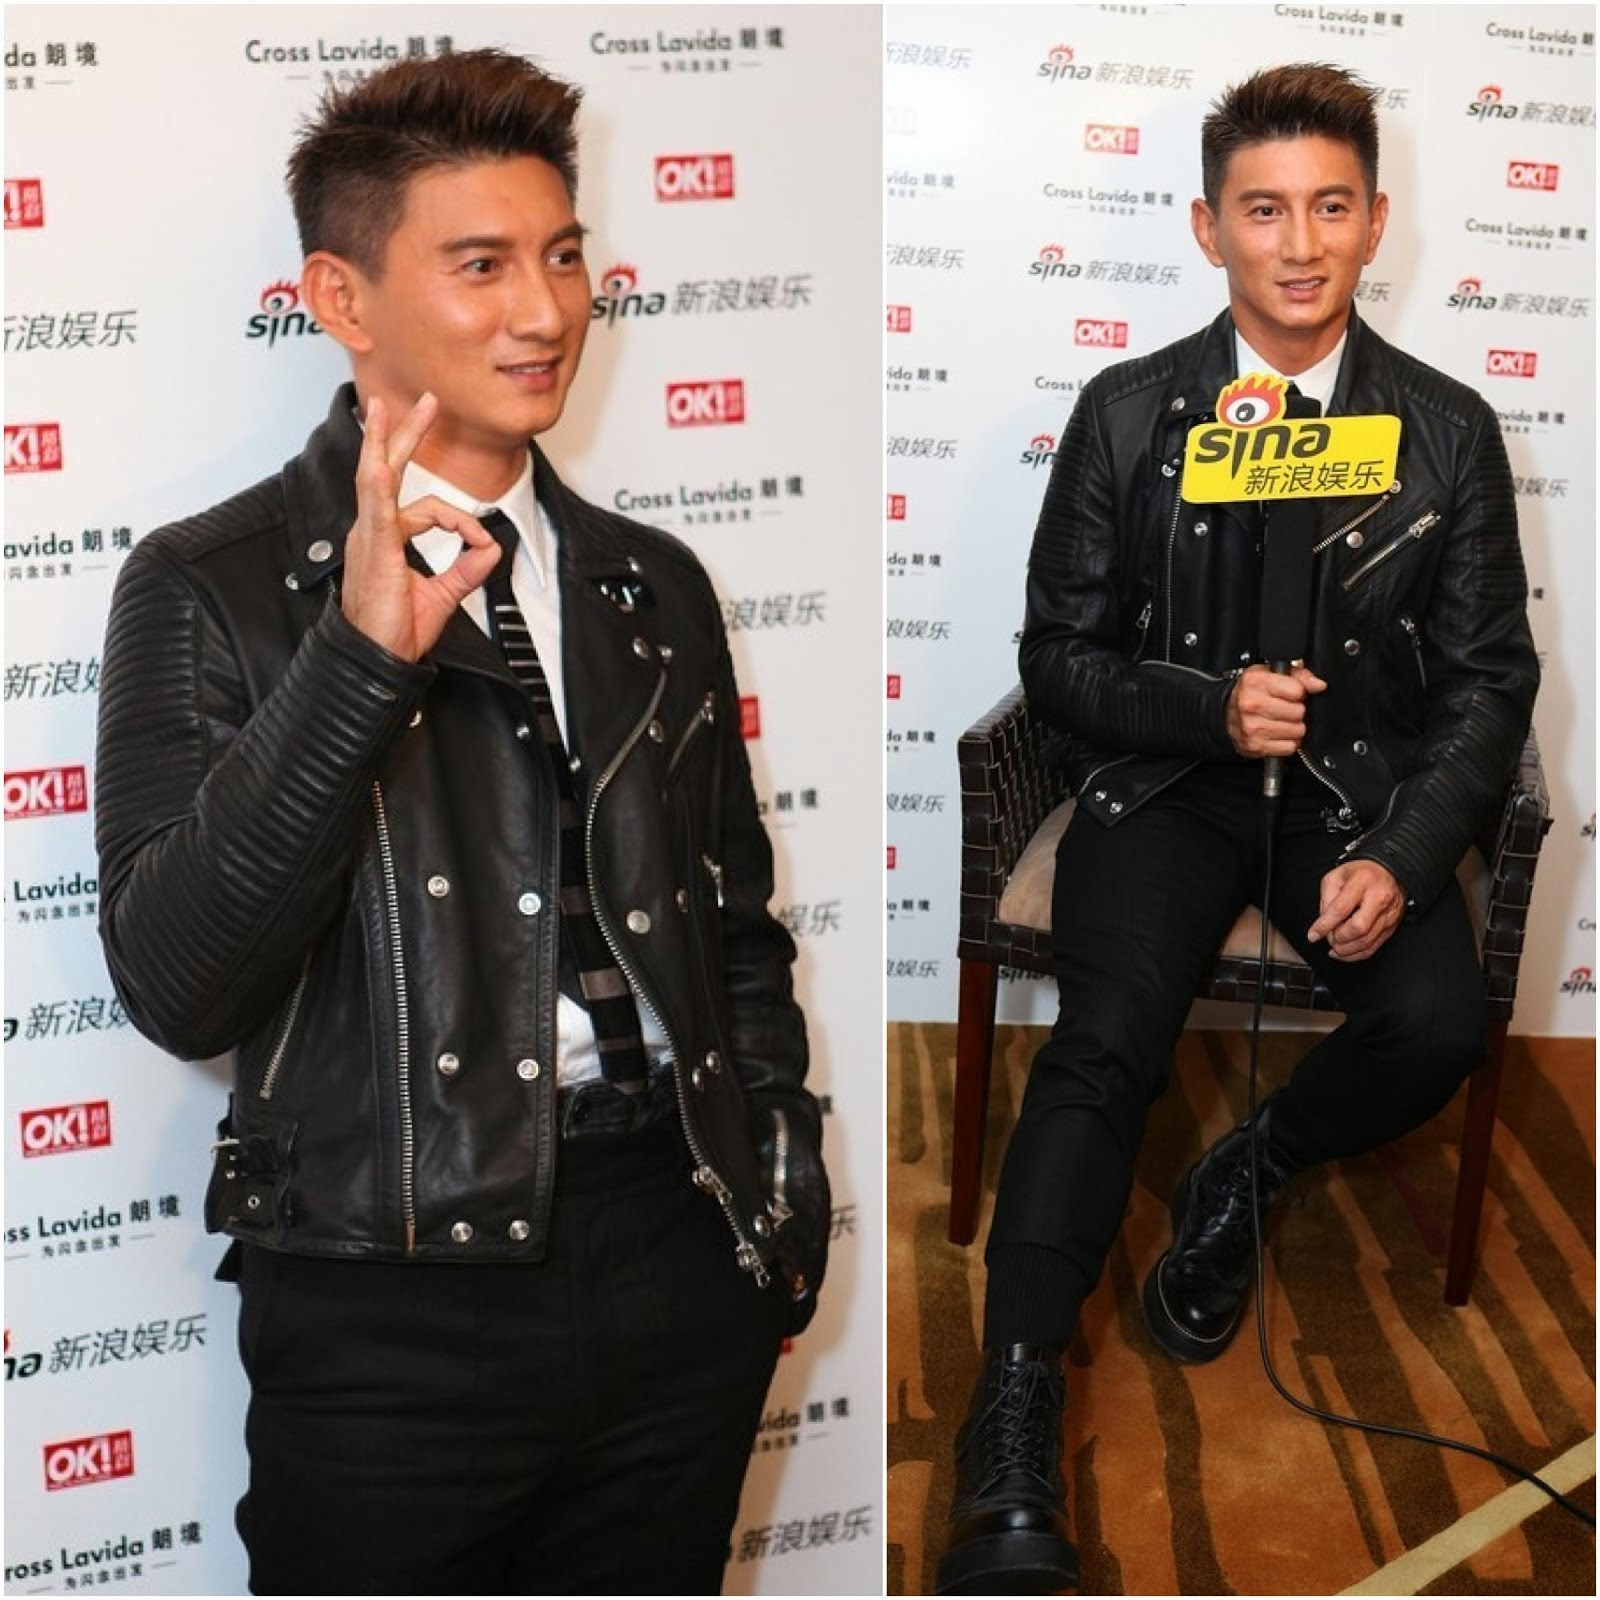 "00O00 Menswear Blog: Nicky Wu Qi Long [吴奇隆] in Burberry - Sina and OK Magazine event, Shanghai 新浪娱乐与《OK!精彩》杂志上海 ""明星街拍盛典"""